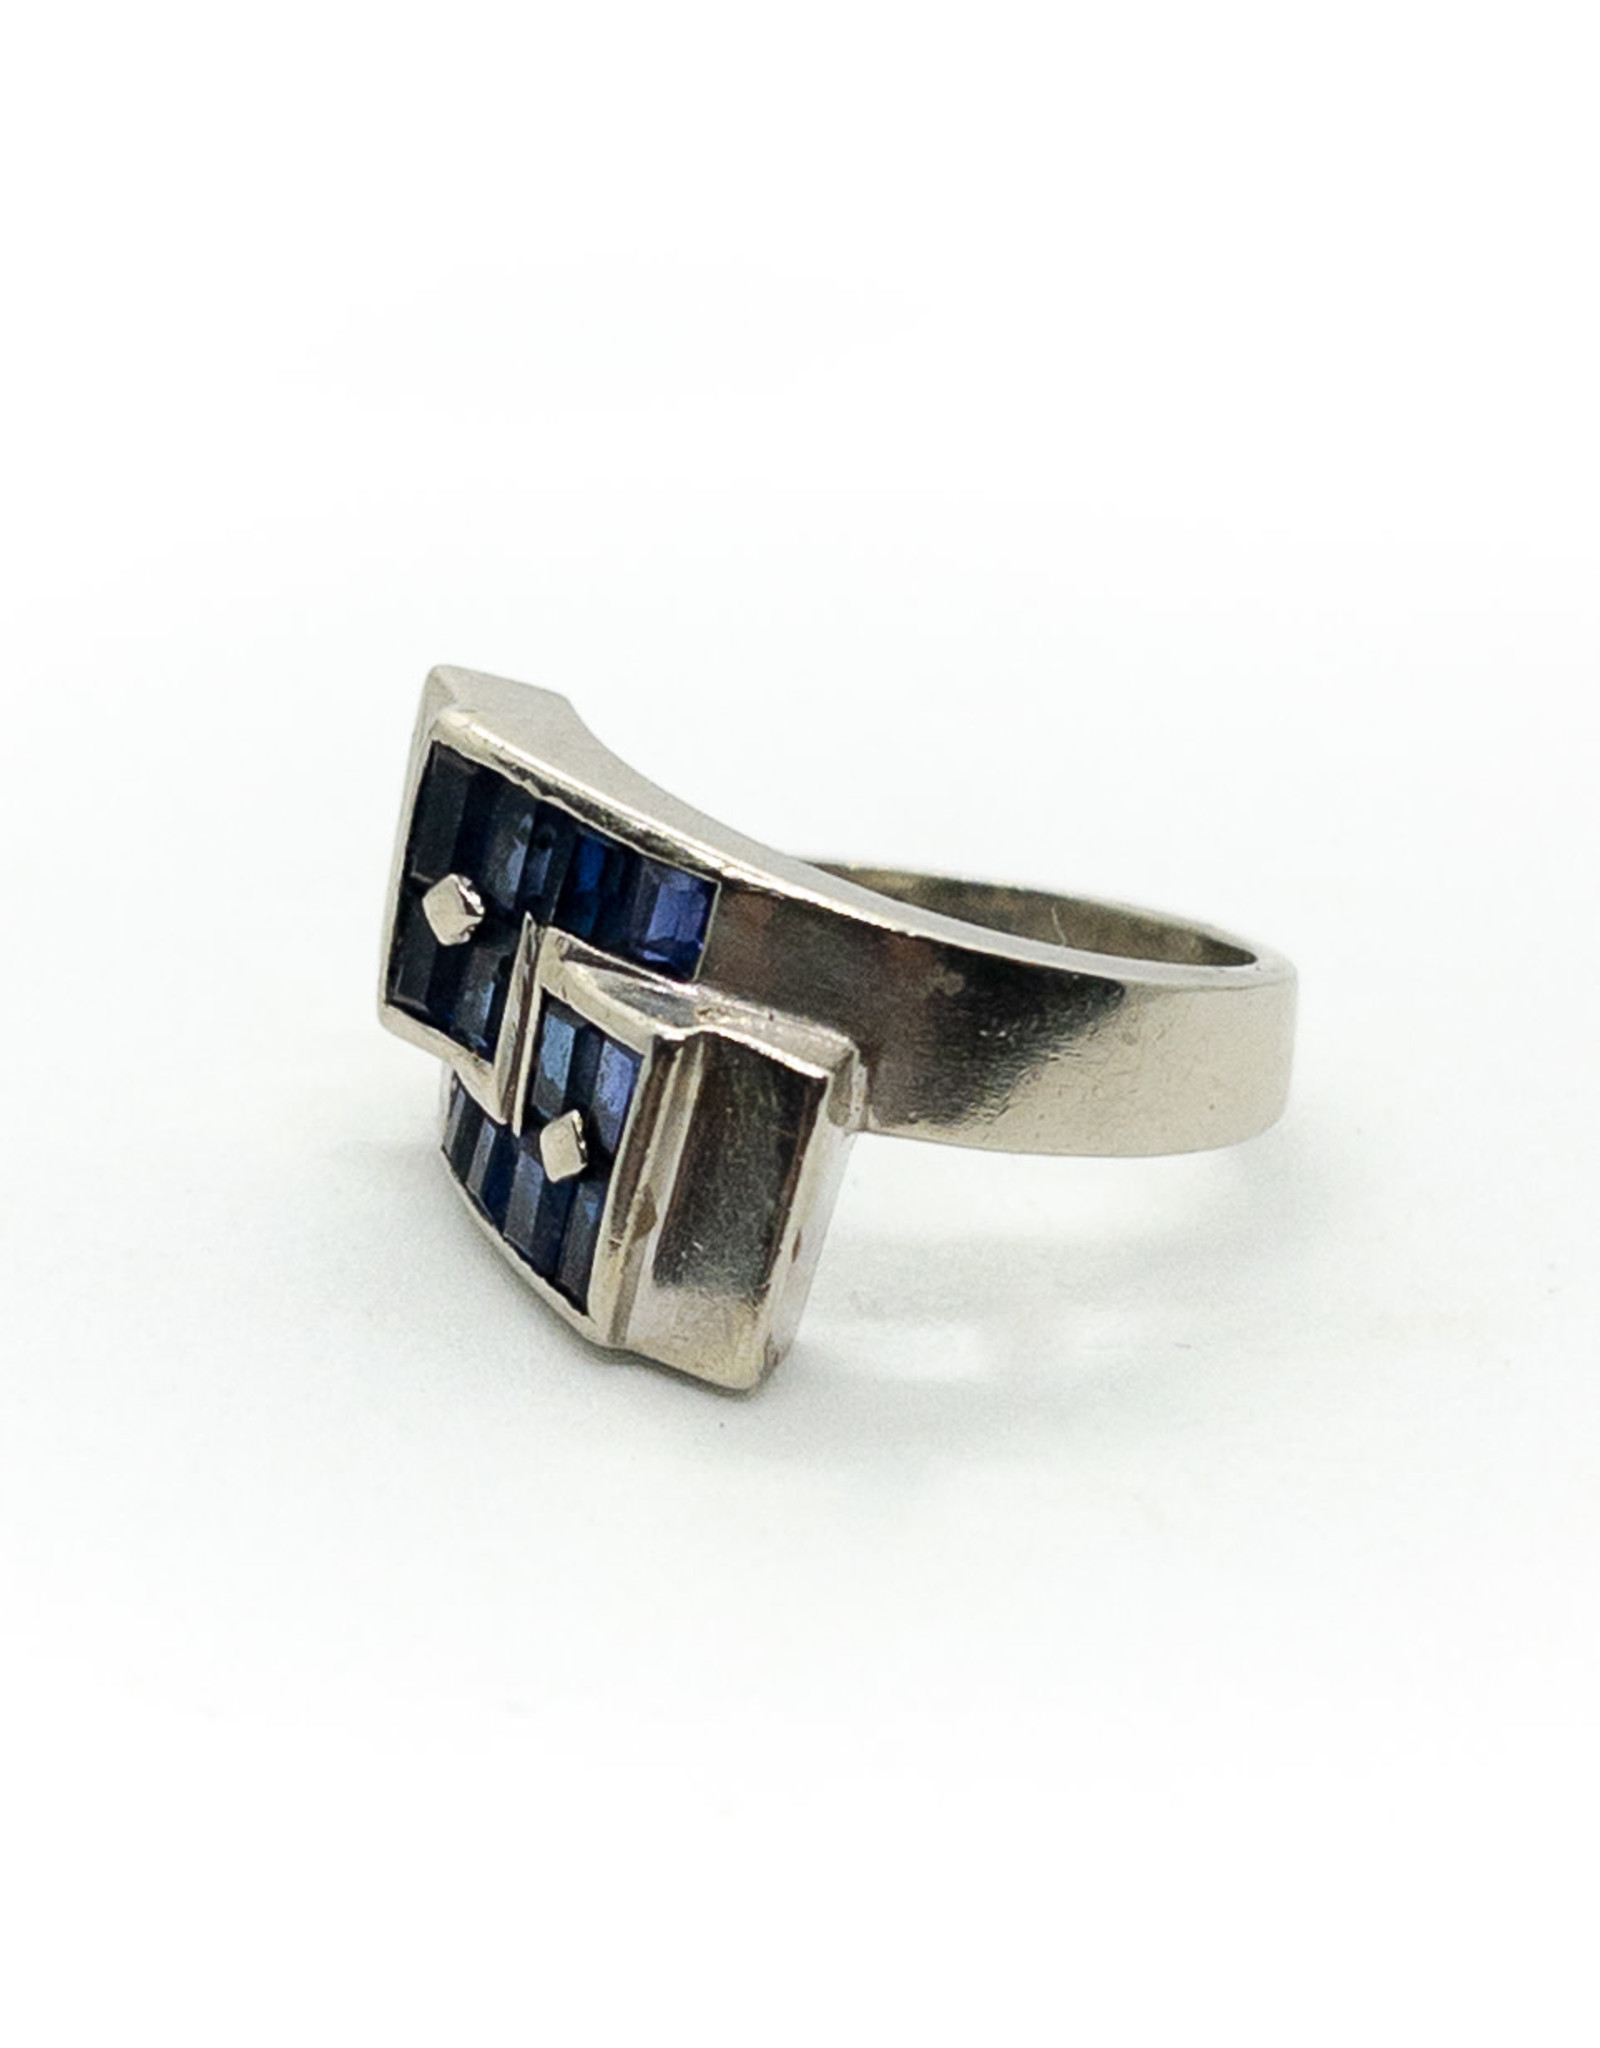 14K White Gold Ring with 12 Blue Sapphires